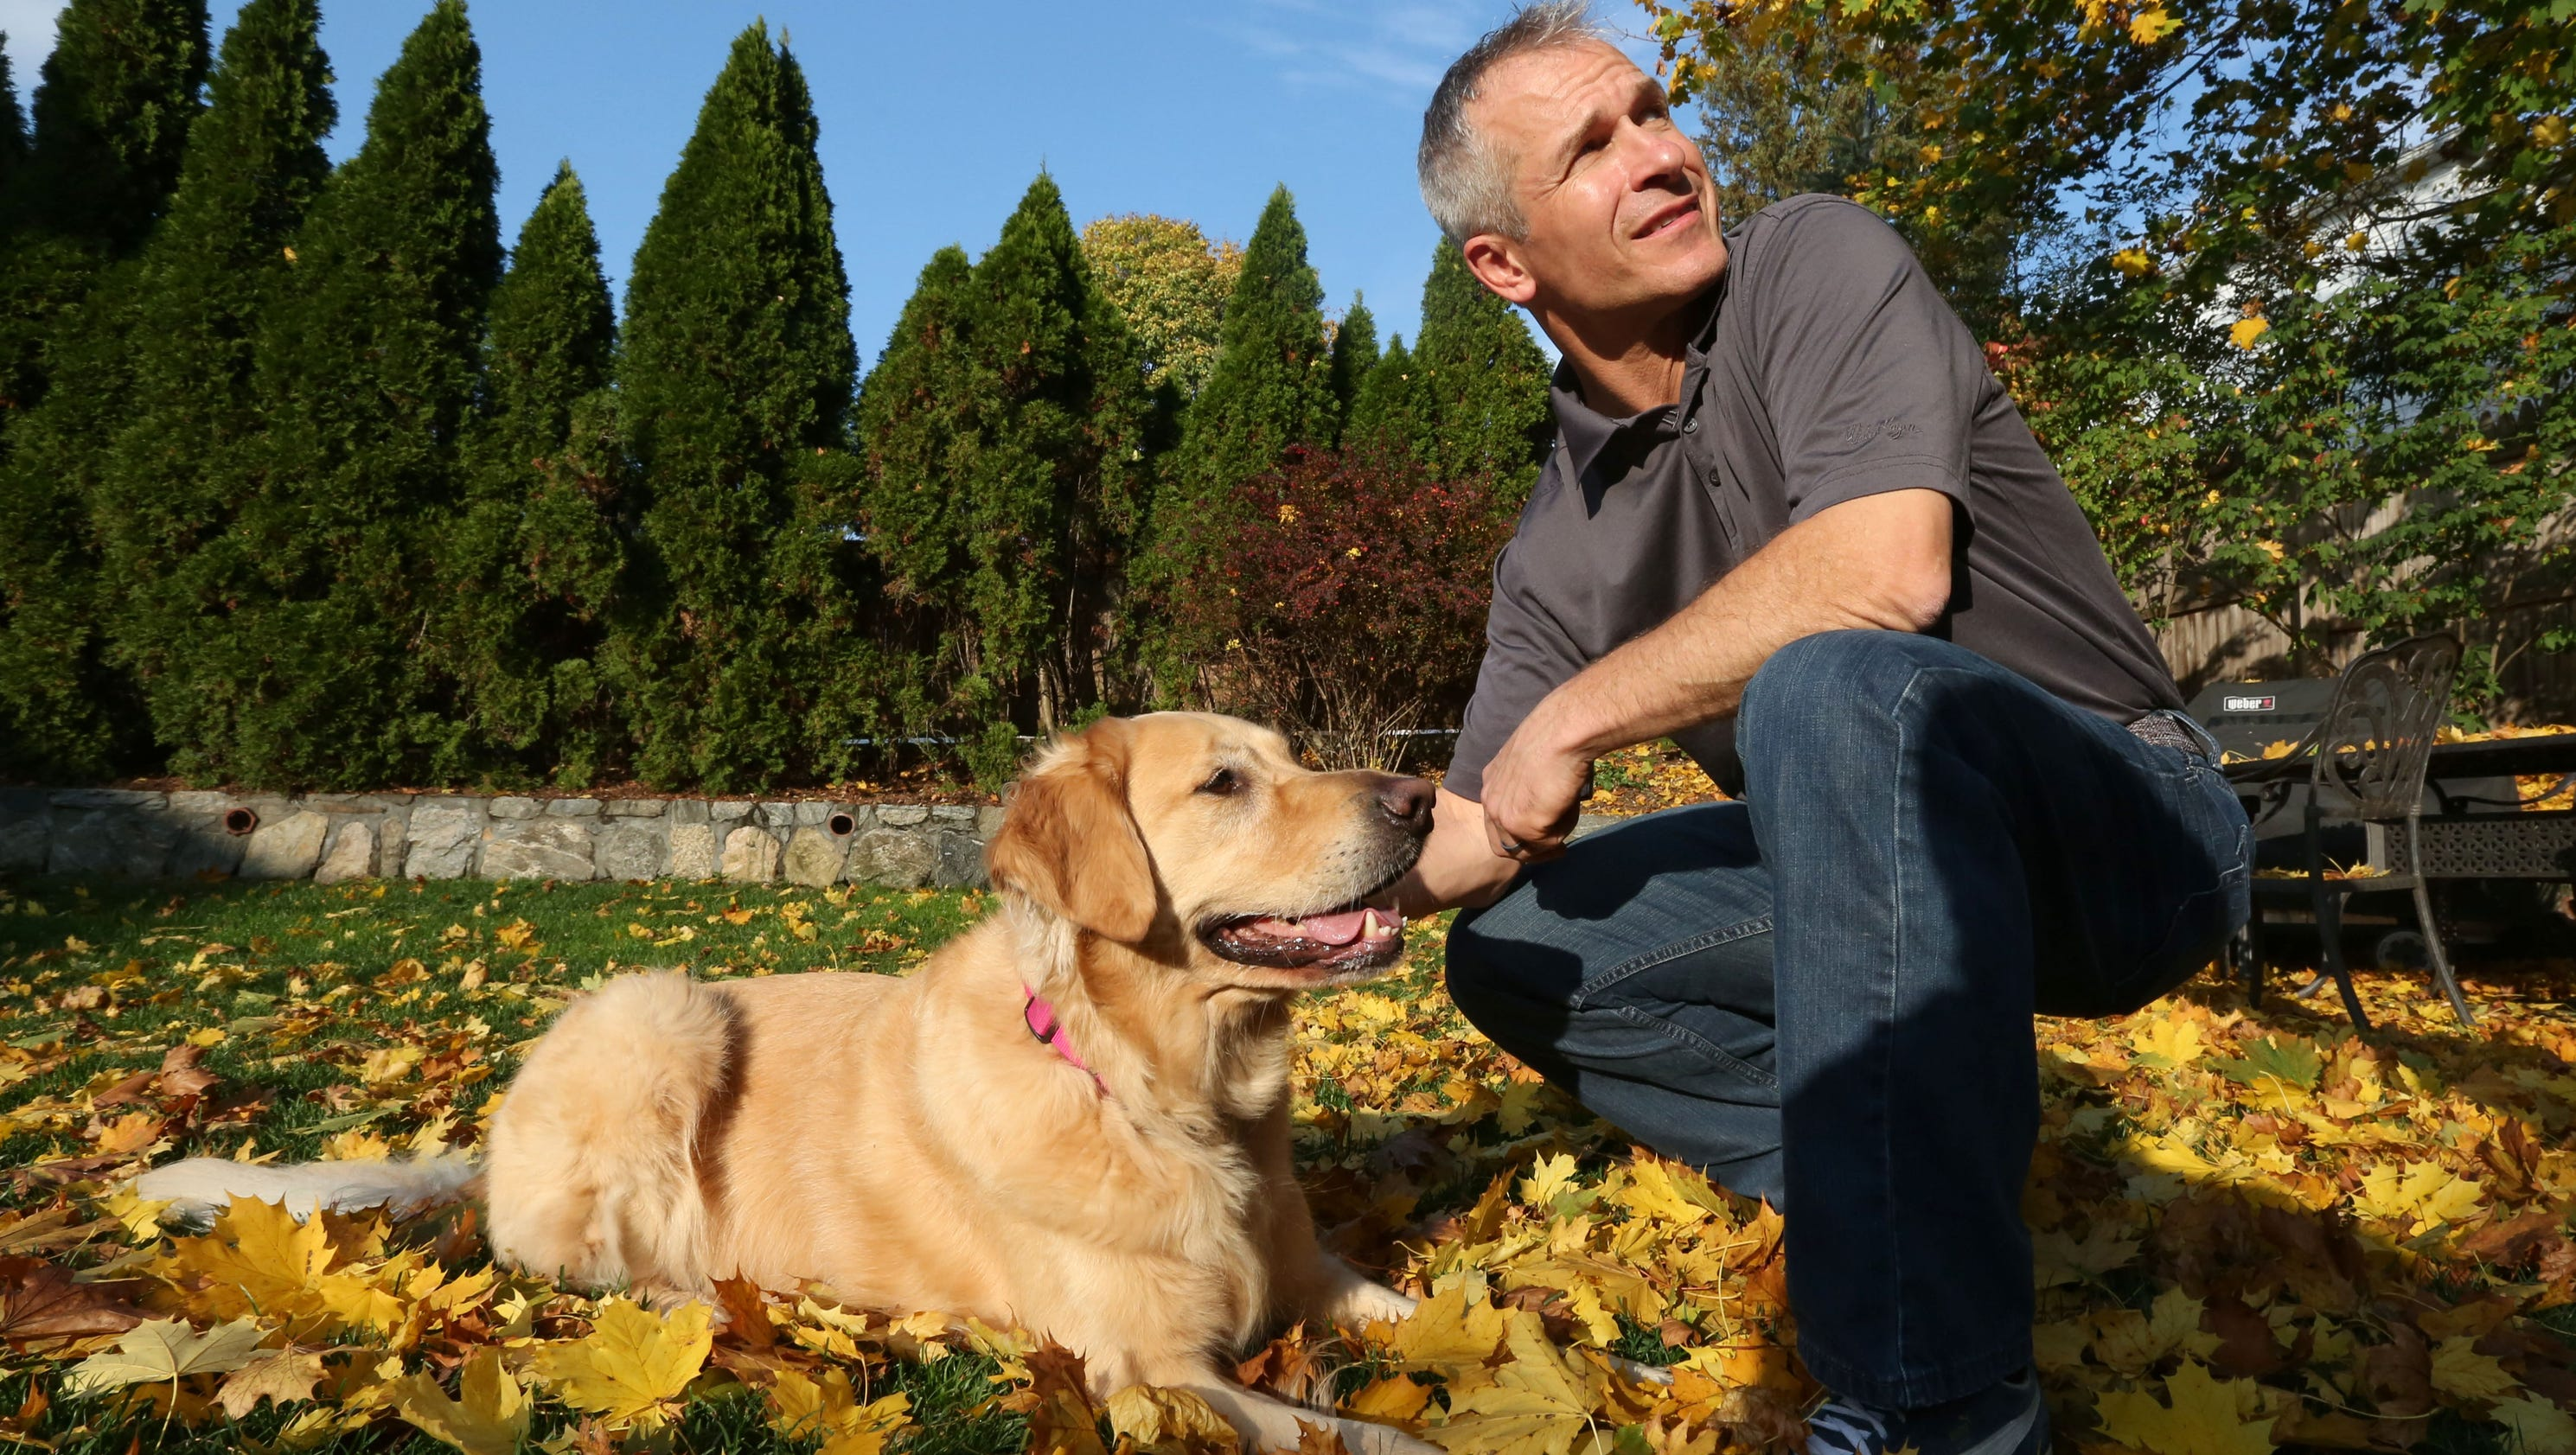 dog parks grow in popularity but spur controversy